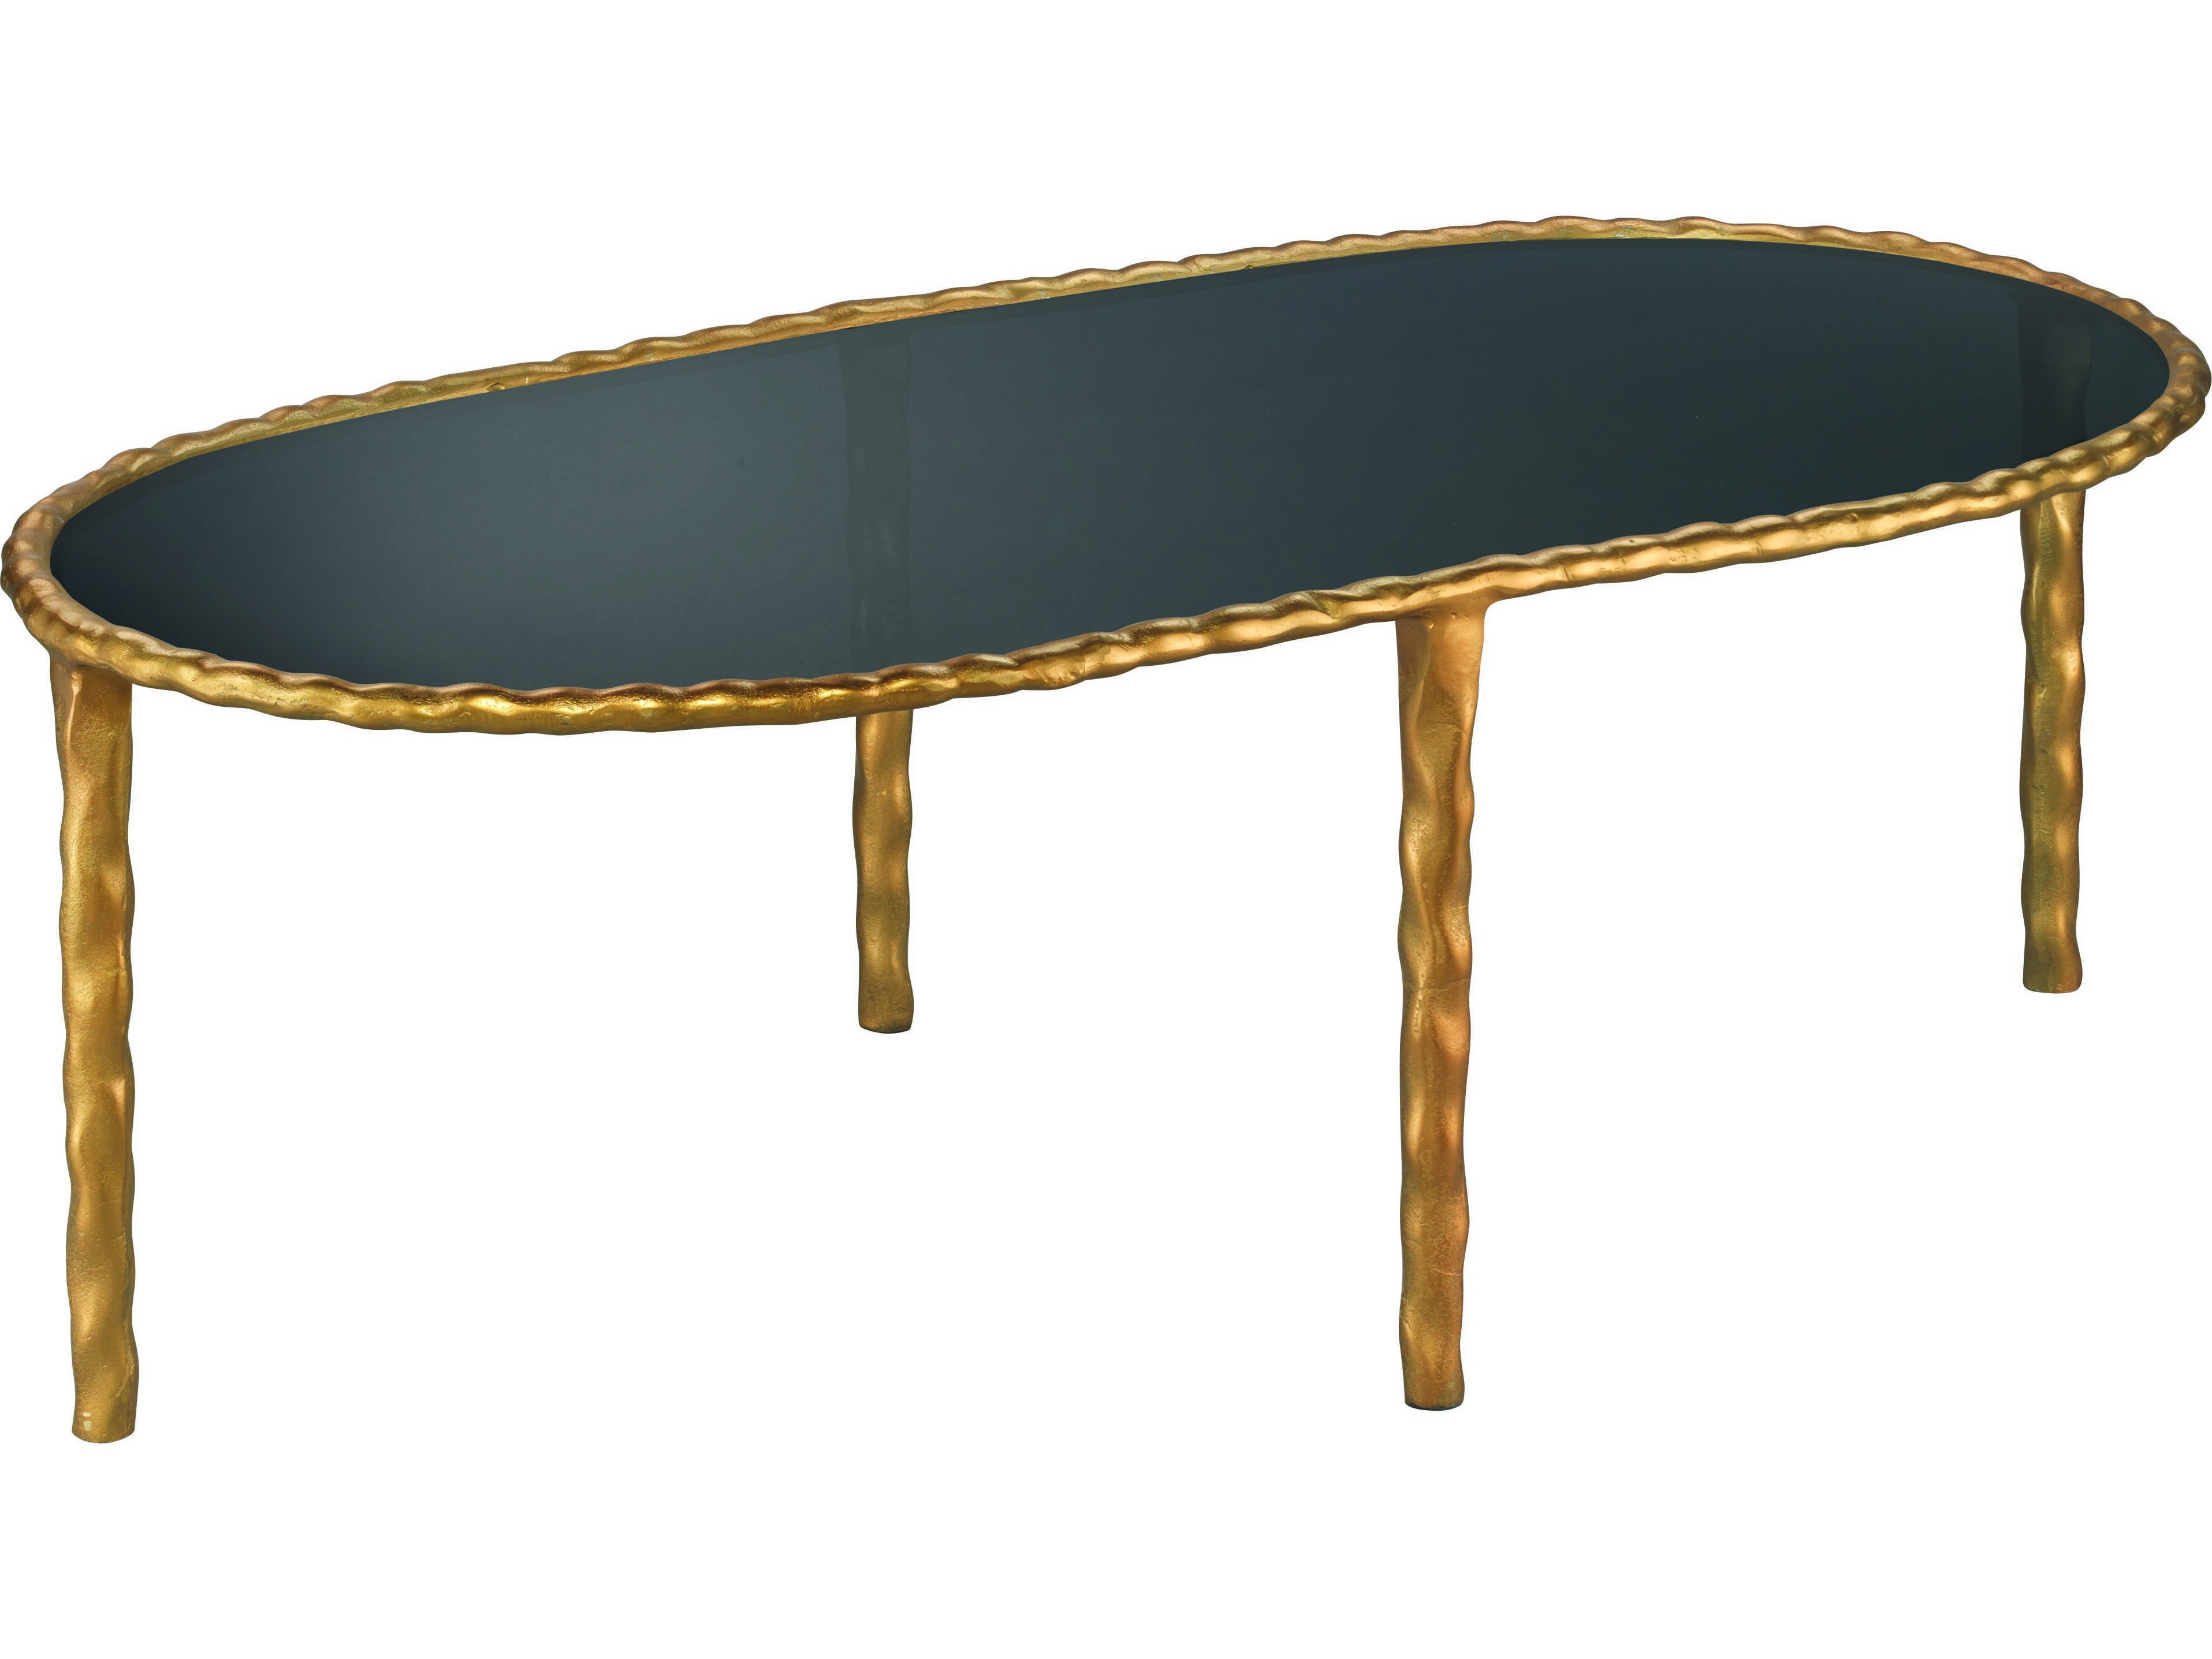 Jamie Young Company Jmf 48 5 39 39 X 24 39 39 Oval Gold Black Glass Coffee Table 20jmfov Ctbk